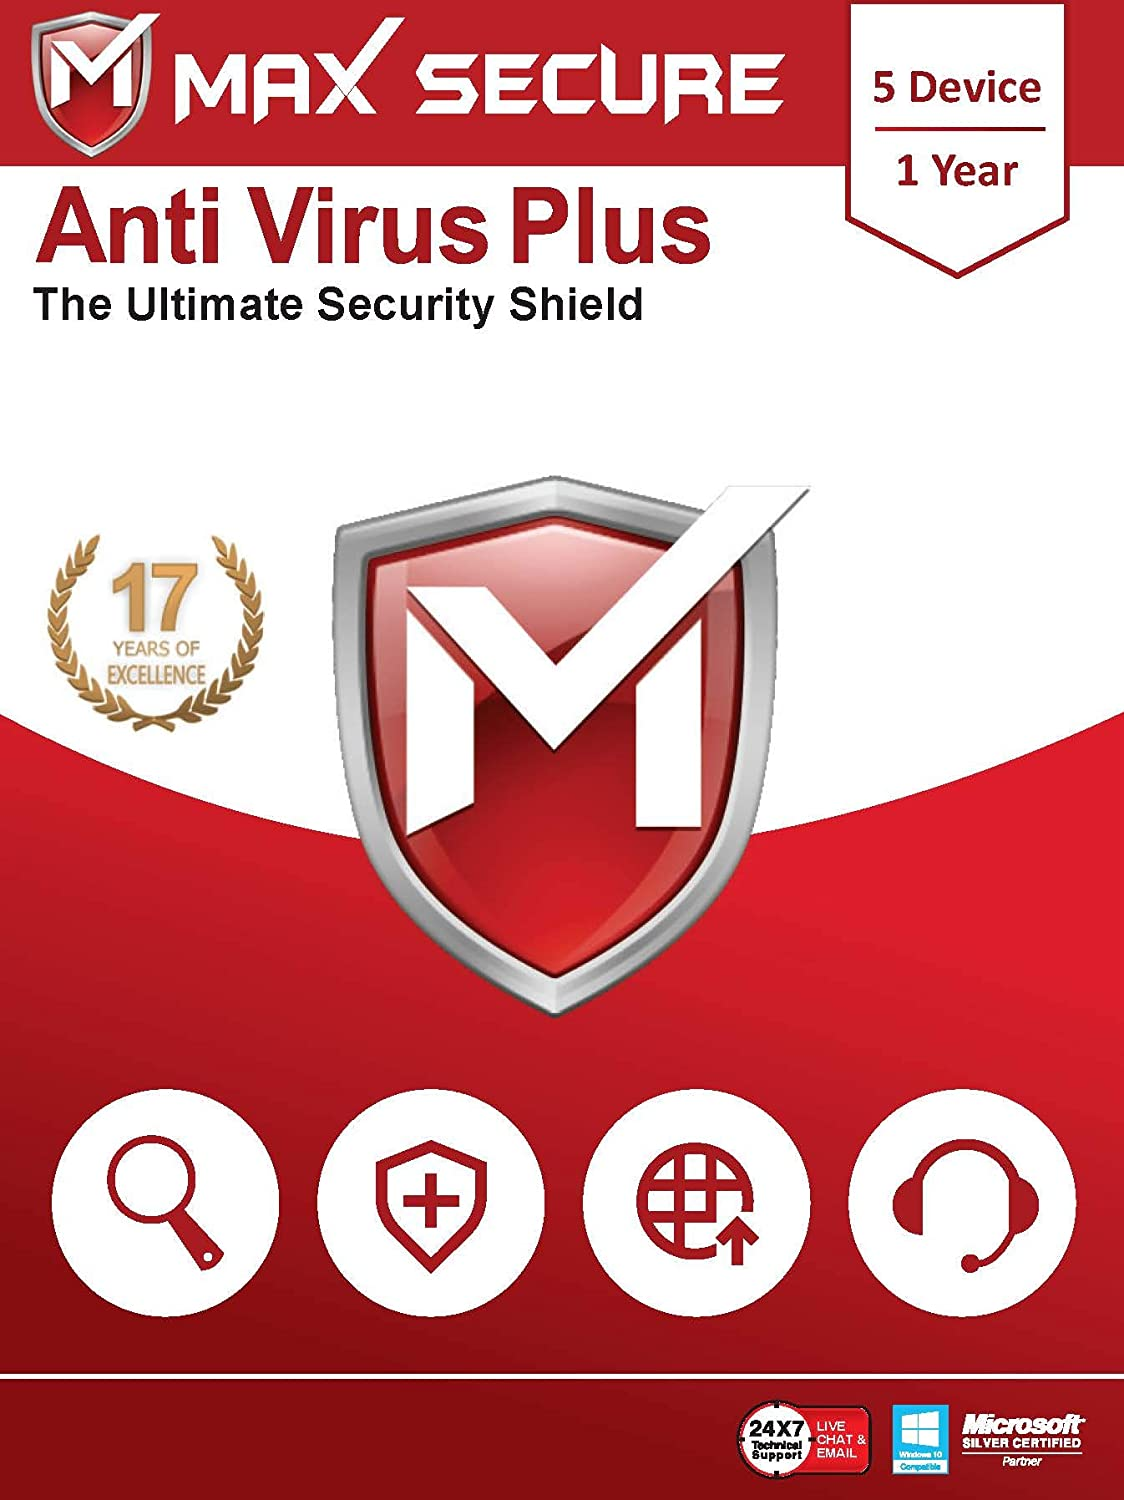 Max Secure Software Antivirus Plus for PC 2019 | 5 Device | 1 Year (Activation Key Card)